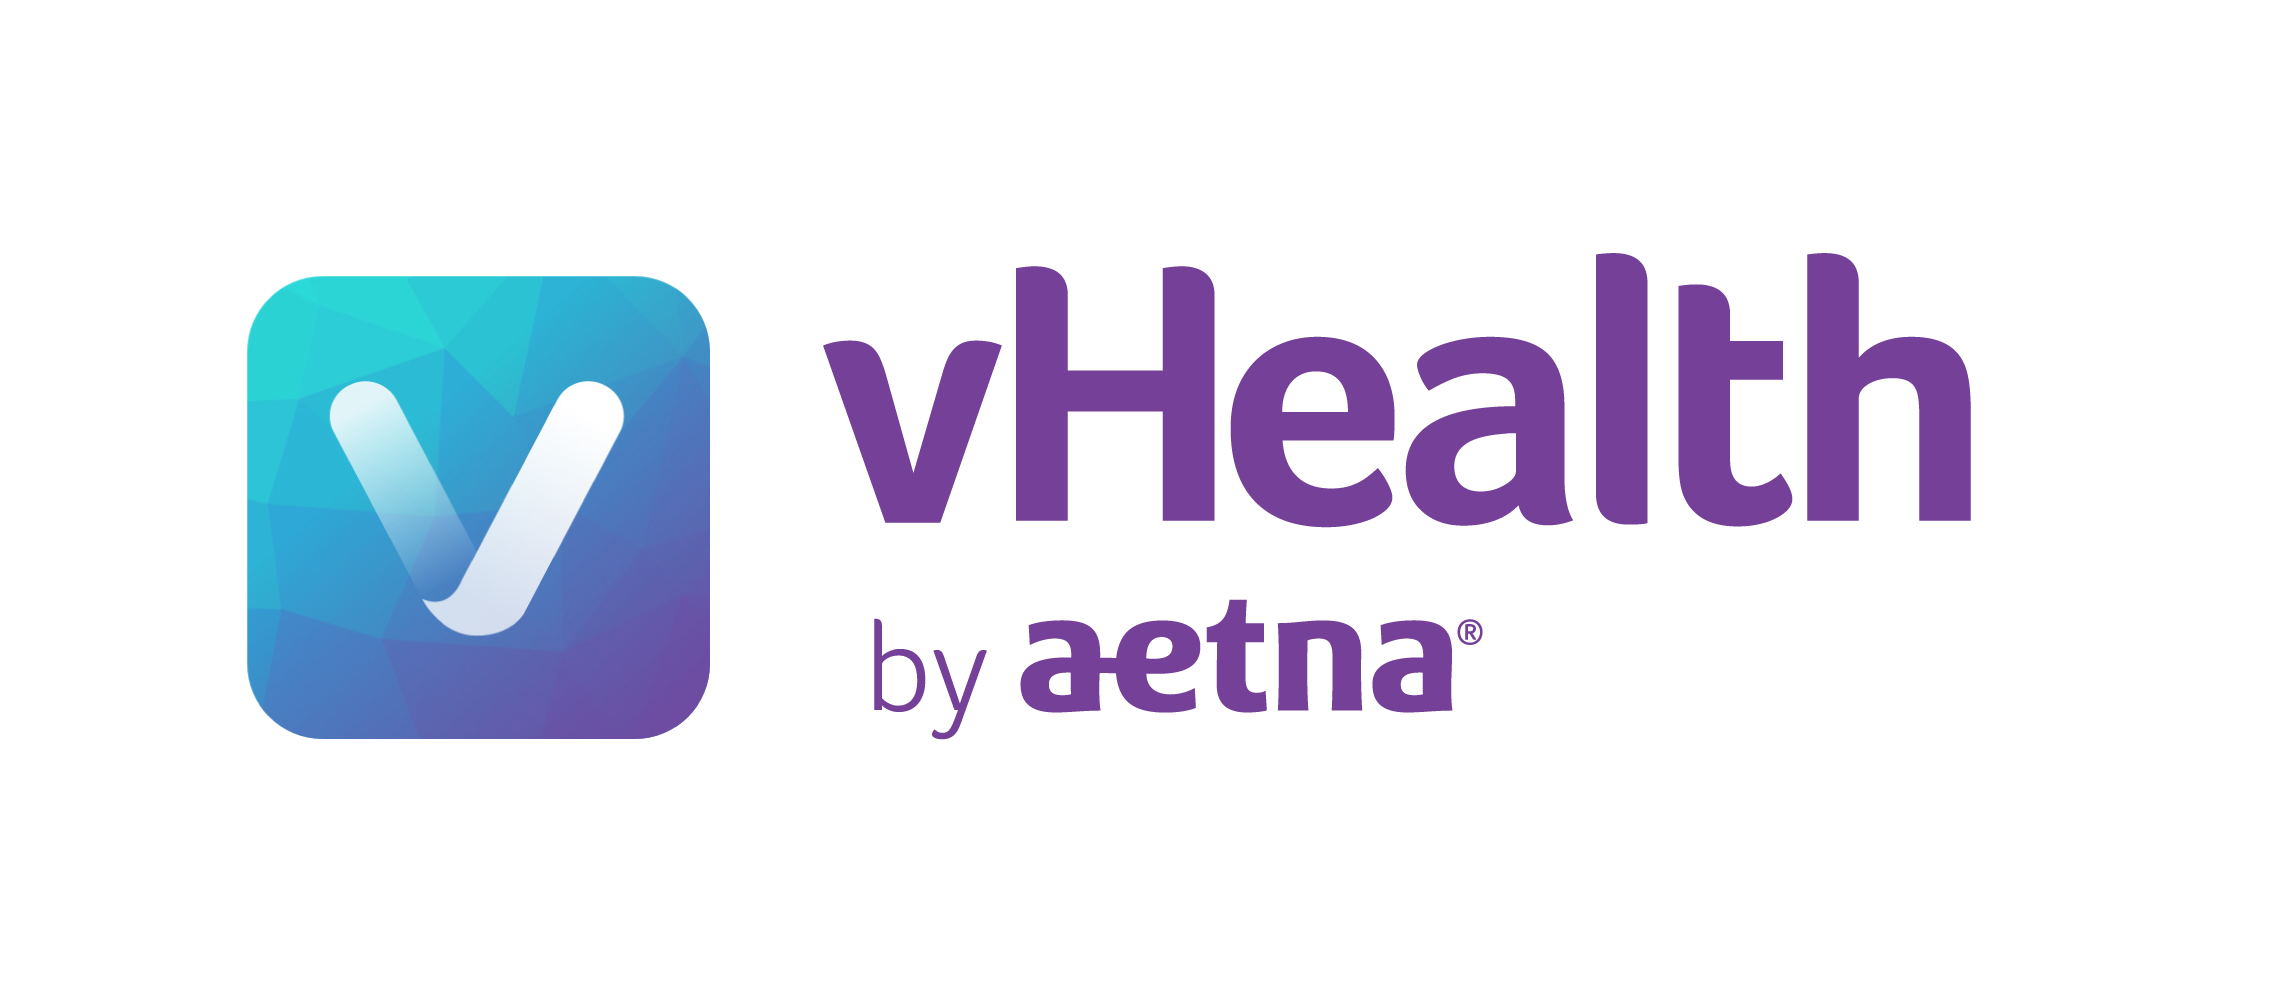 Aetna launches vHealth with monthly subscription.